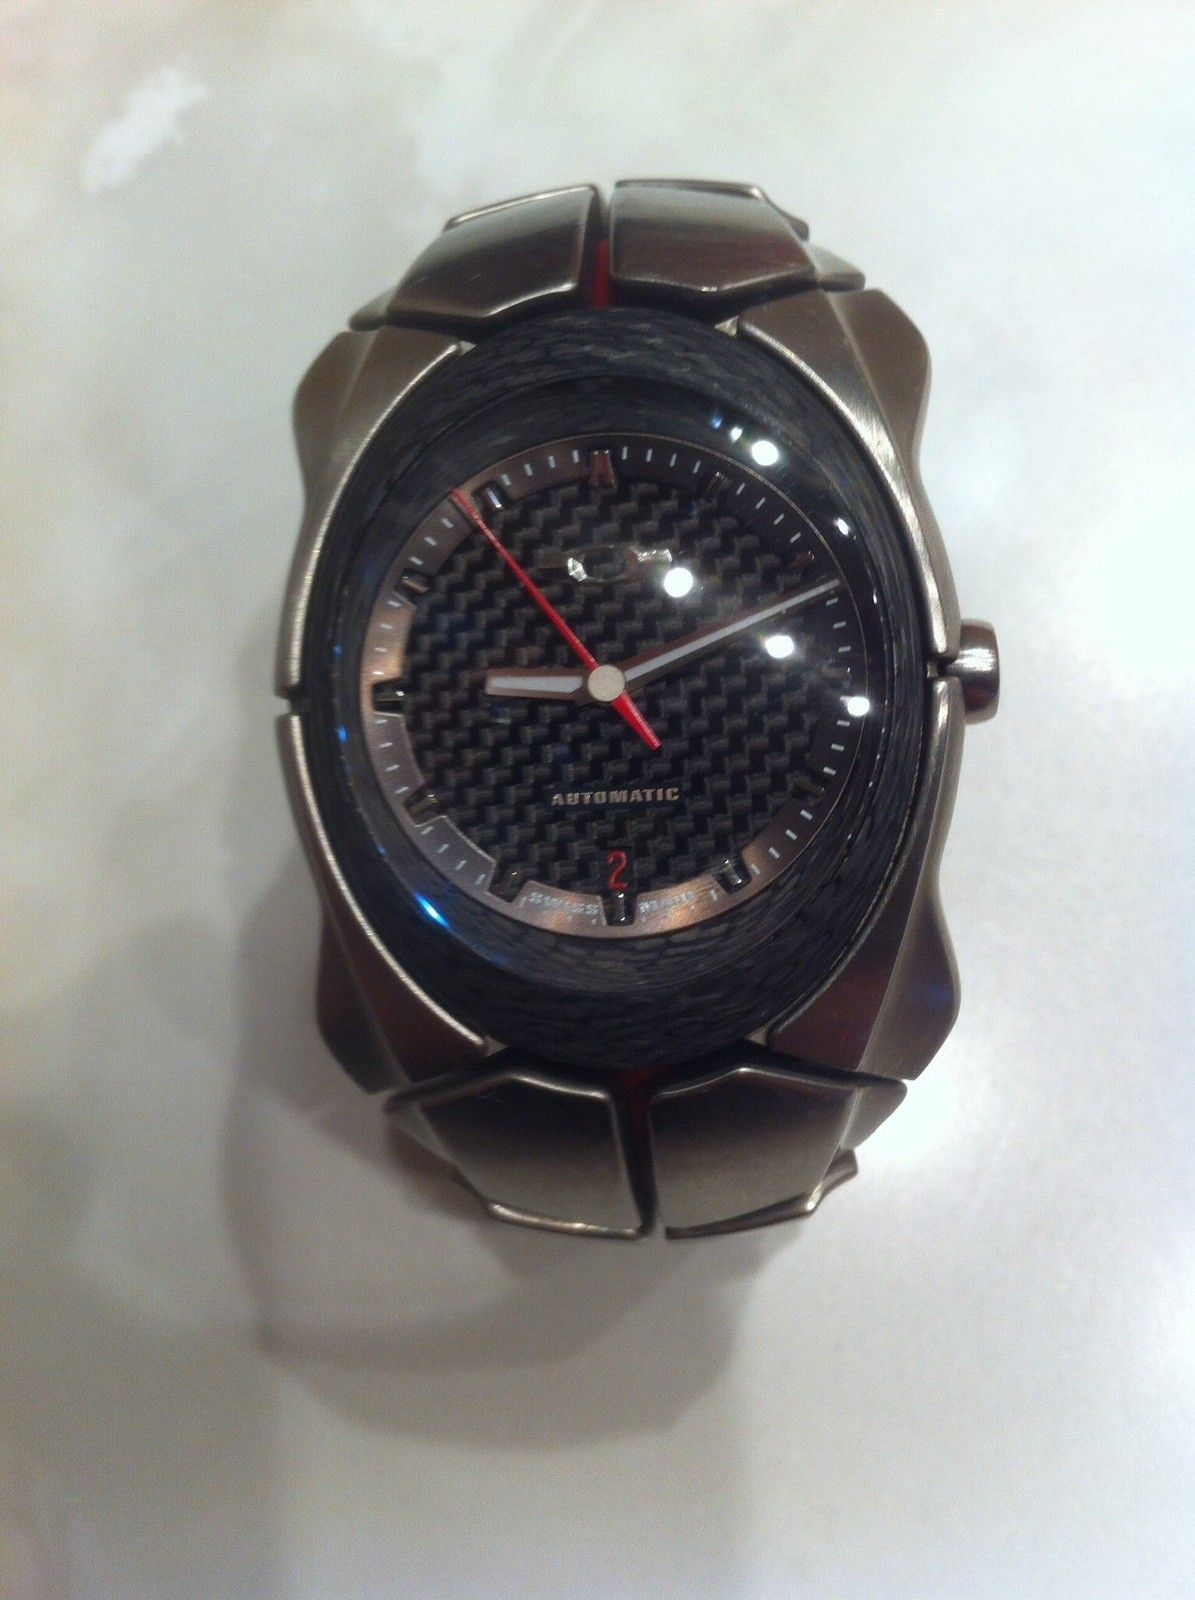 Timebomb2 automatic writting on dial fading from red to white - image.jpg